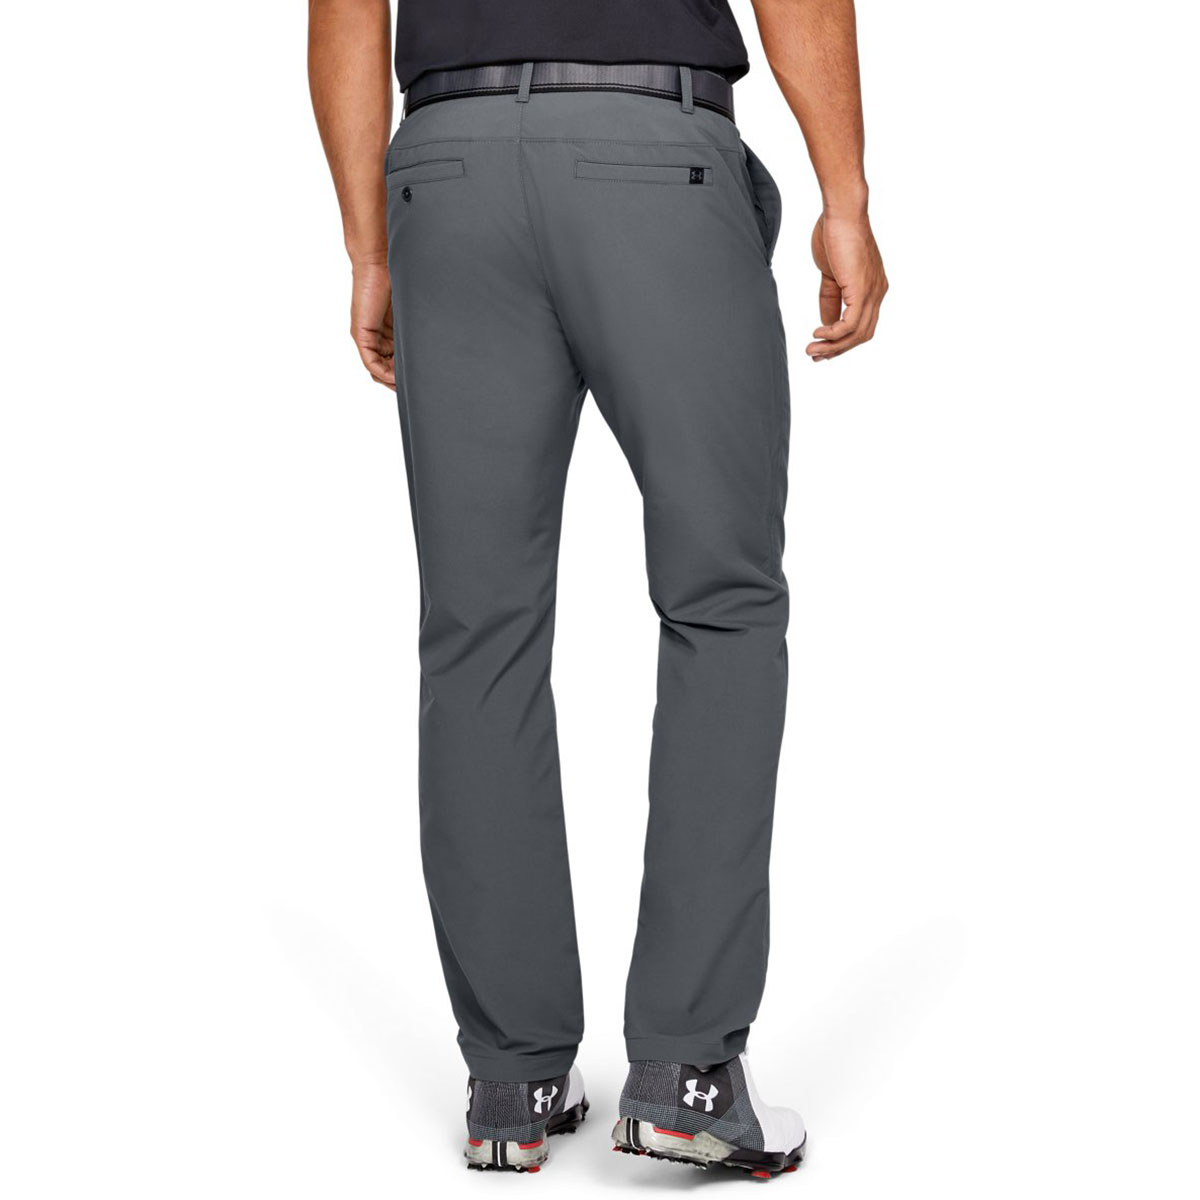 Under-Armour-Mens-2019-EU-Performance-Taper-Soft-Stretch-Golf-Trousers thumbnail 13